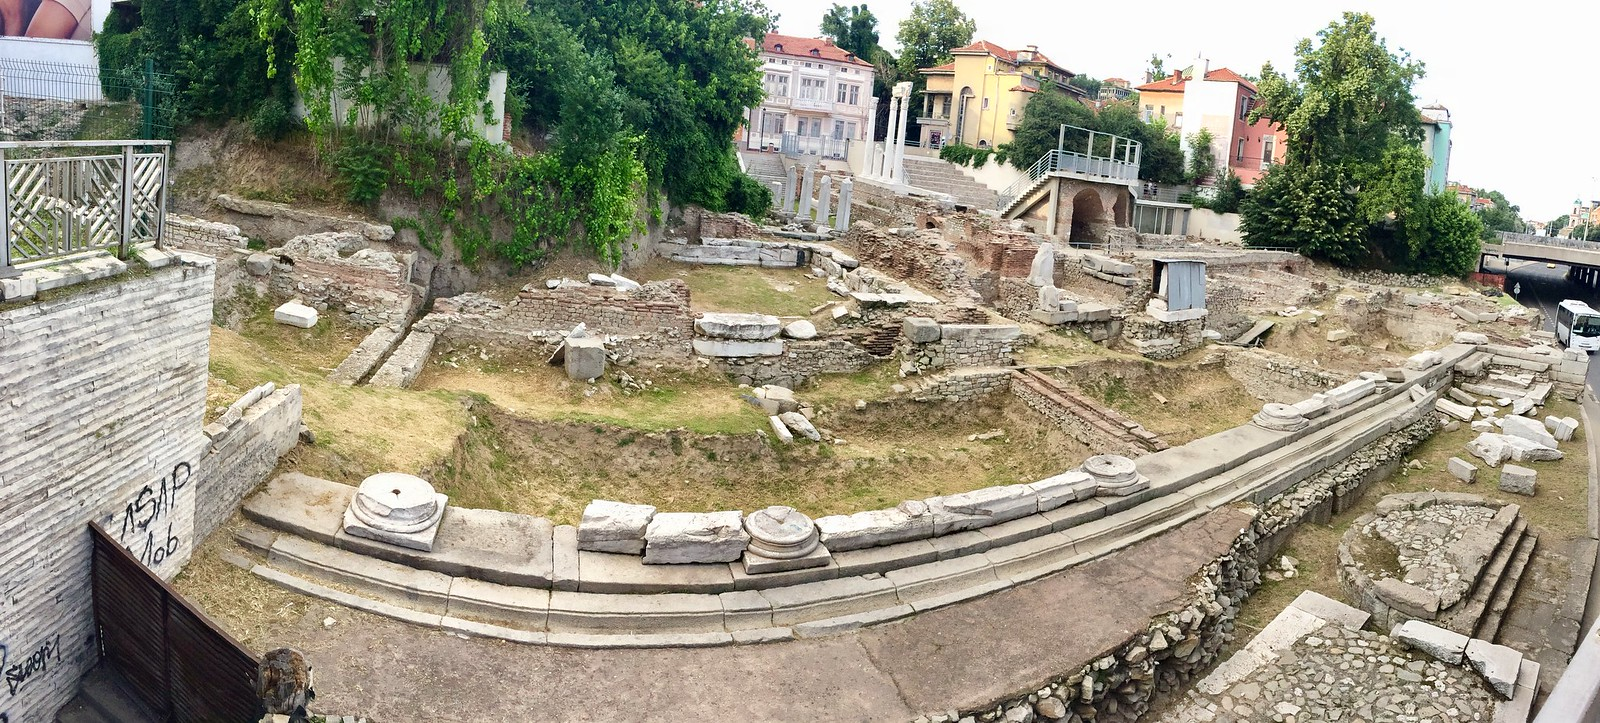 201705 - Balkans - Ancient Roman Ruins right next to street and houses - 24 of 89 - Plovdiv - Hadji Hasan Mahala - Plovdiv, May 22, 2017